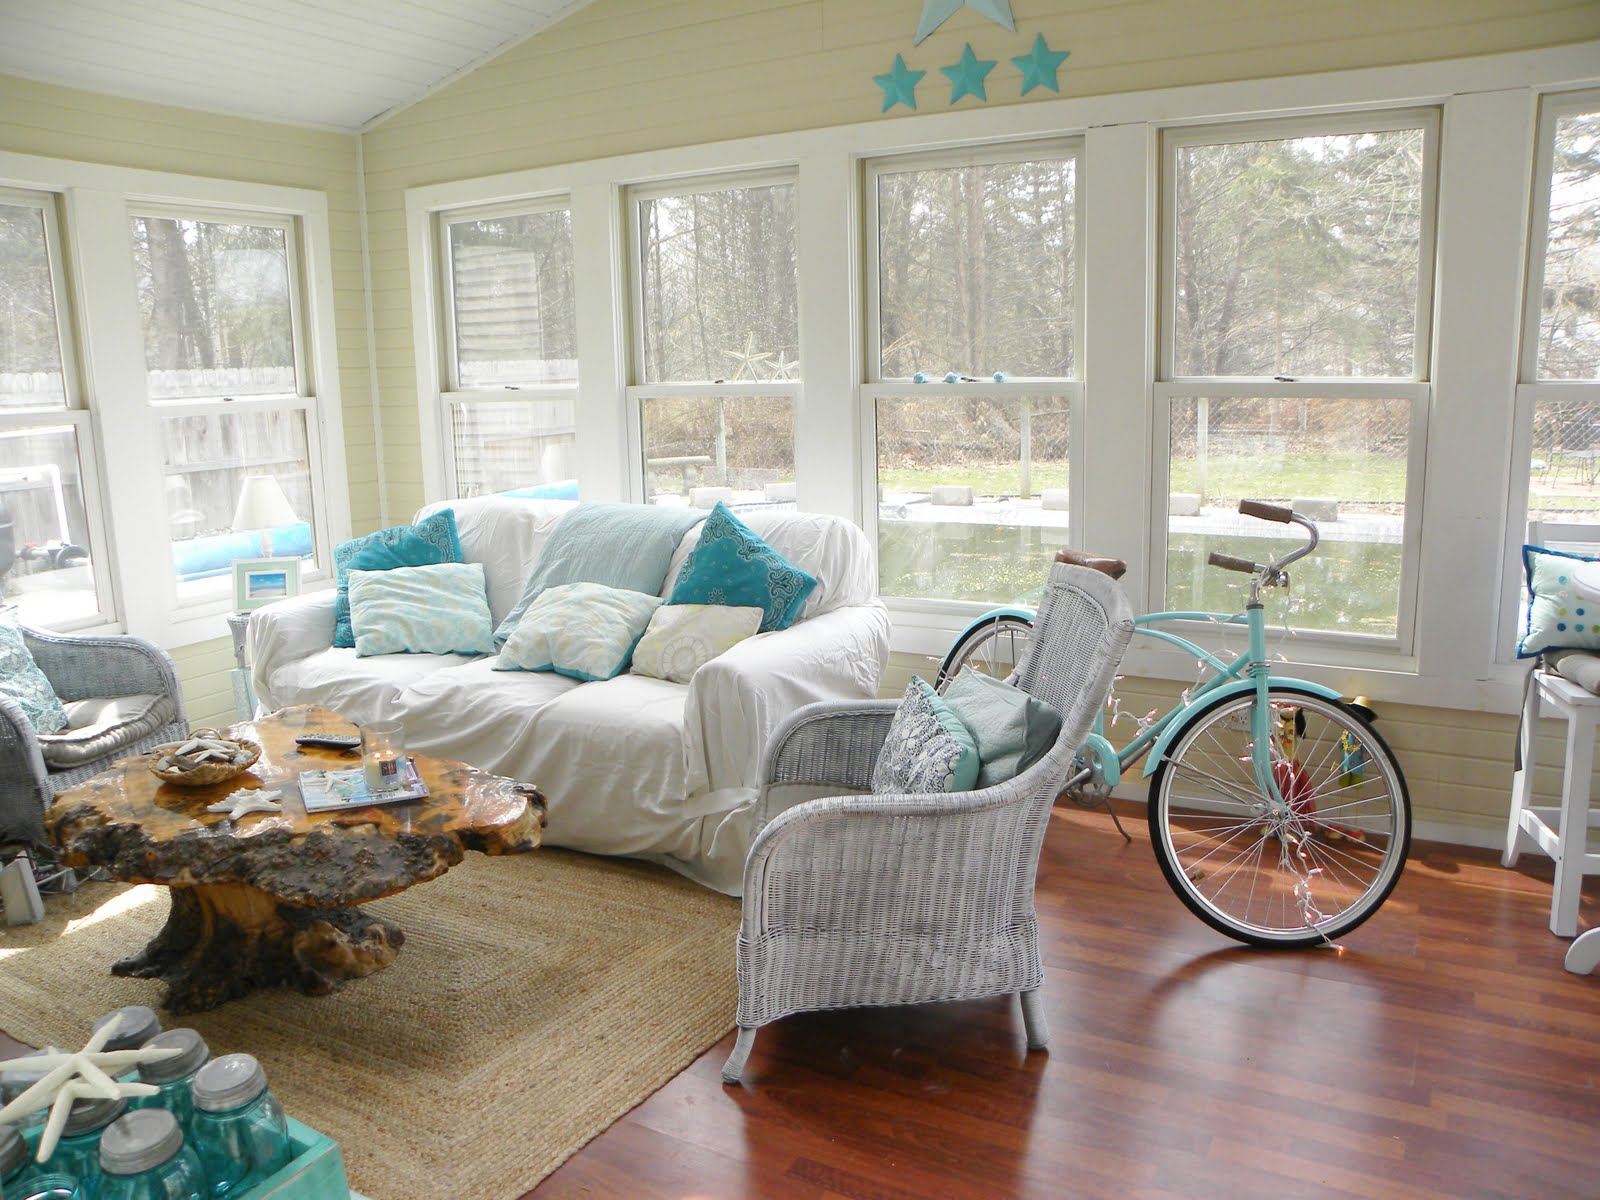 Simple daisy beach cottage design - Beach house decor ideas ...